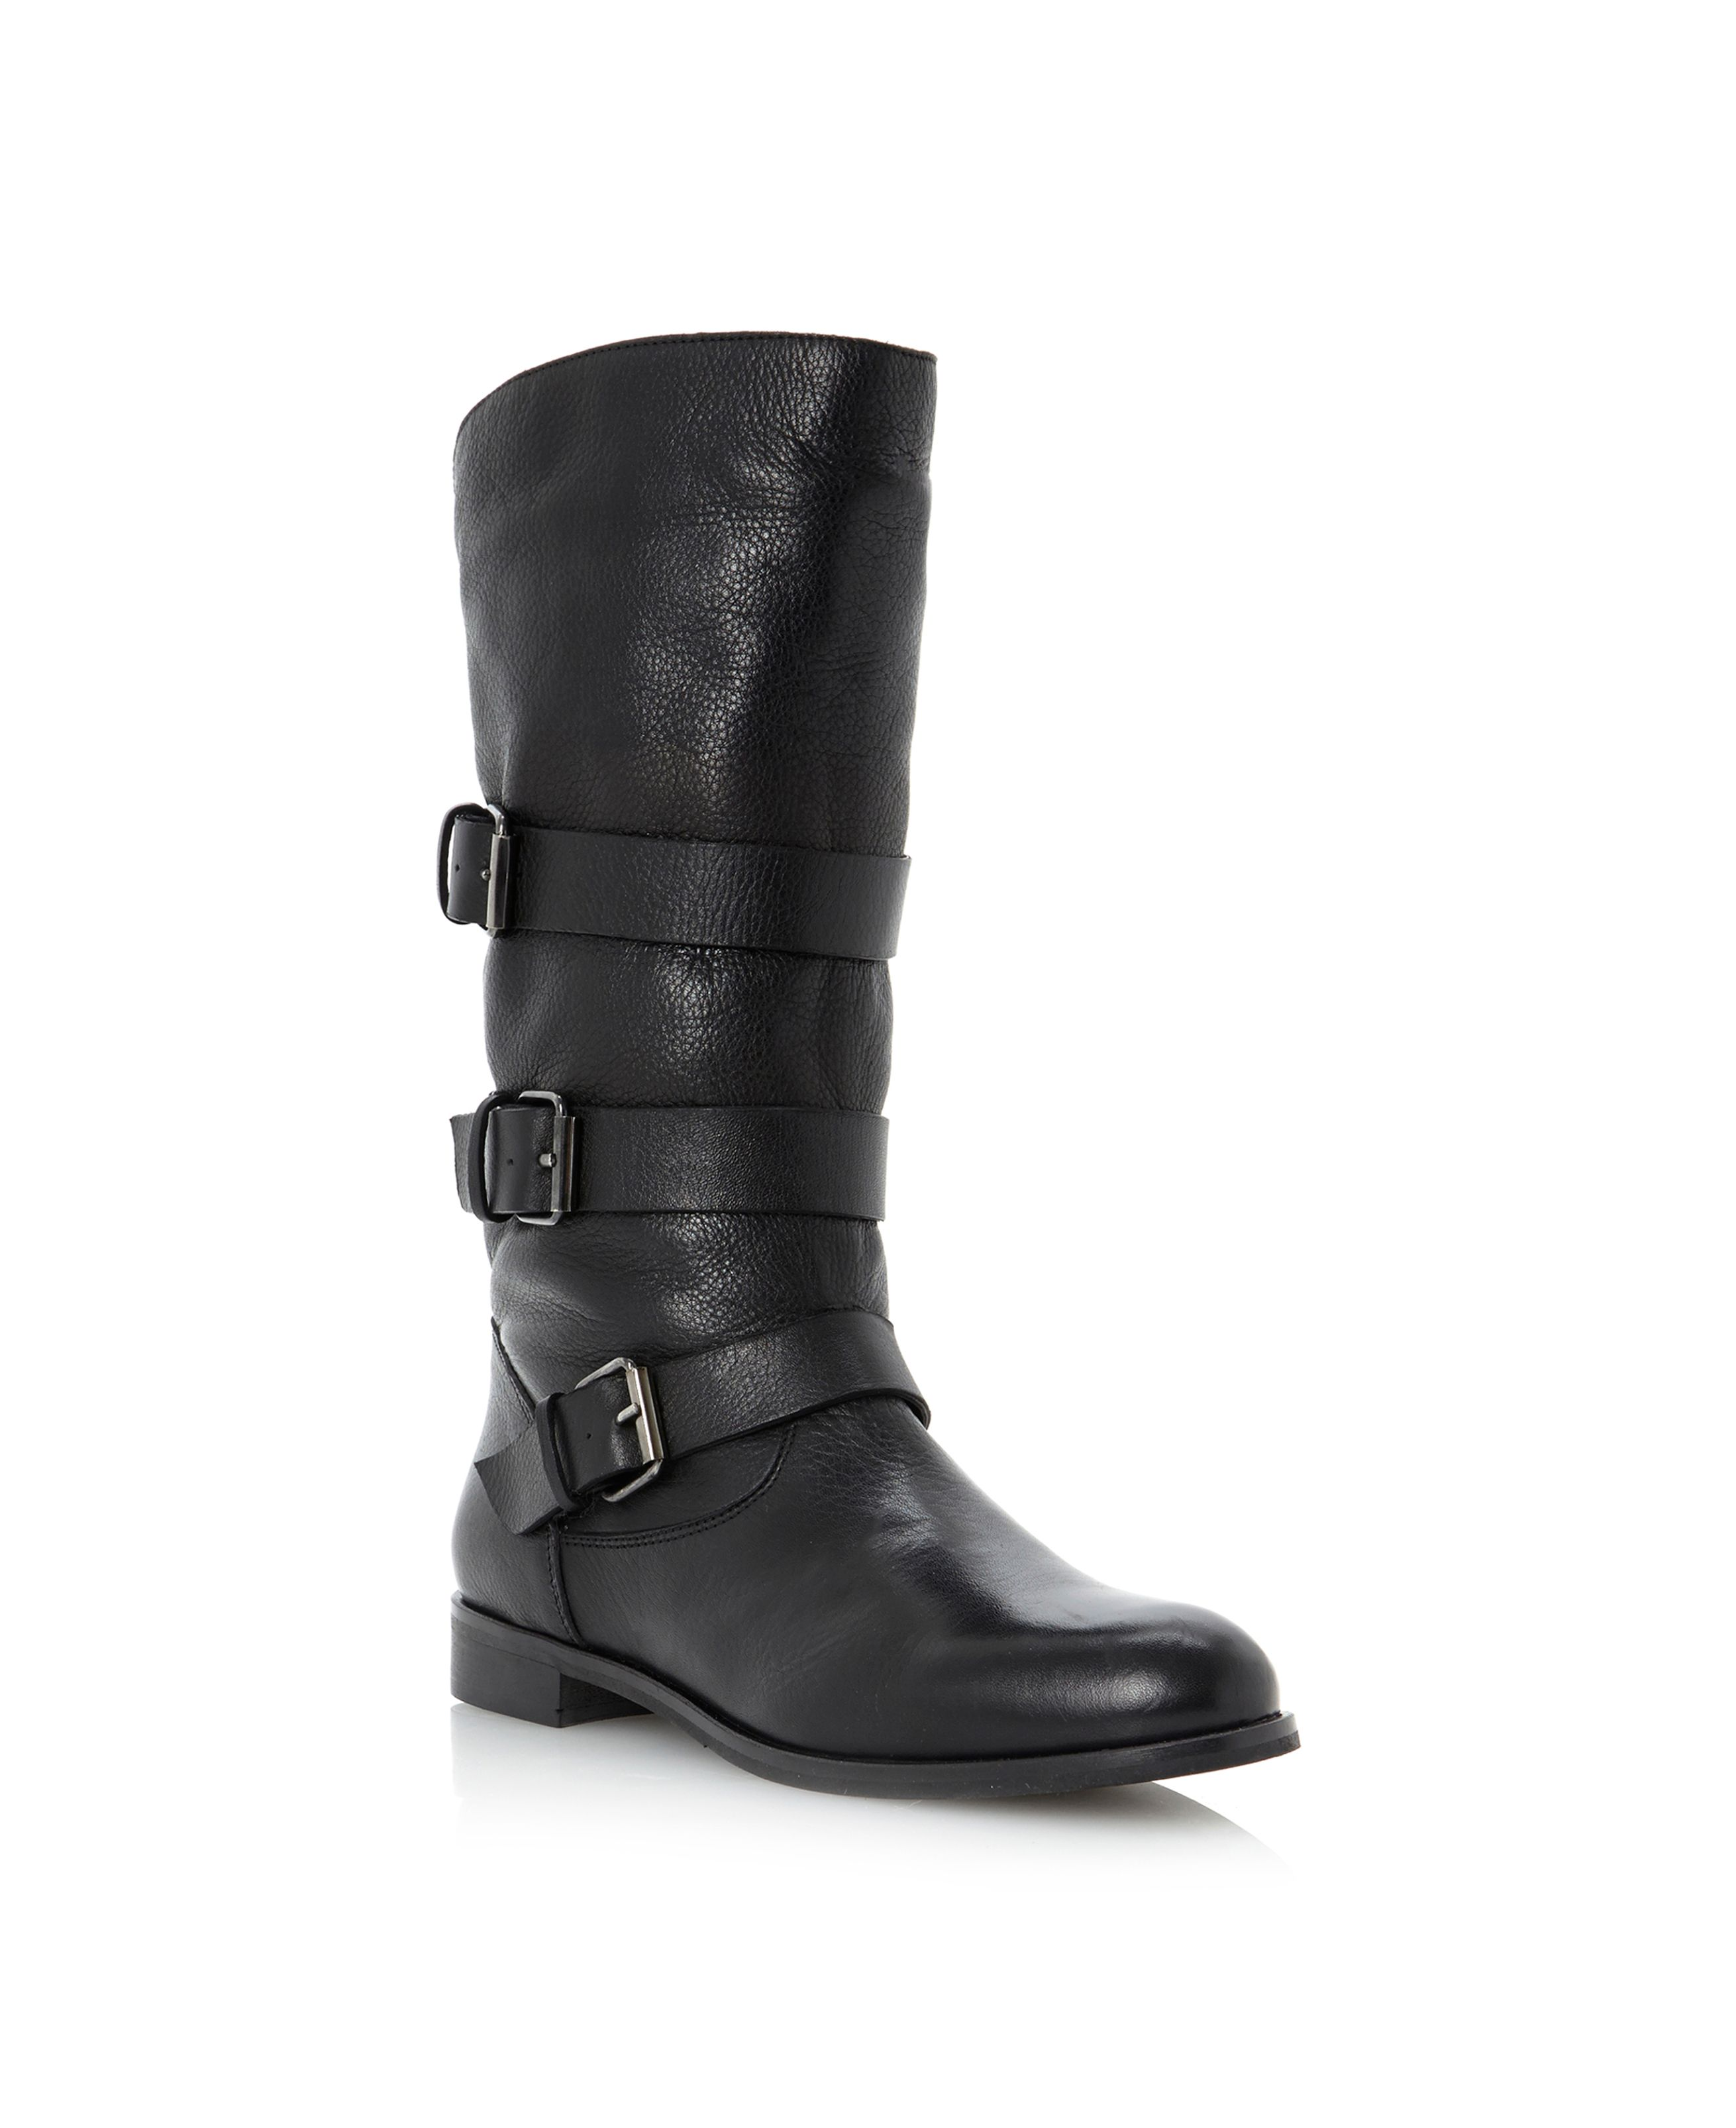 Pettiep multi strap calf boots